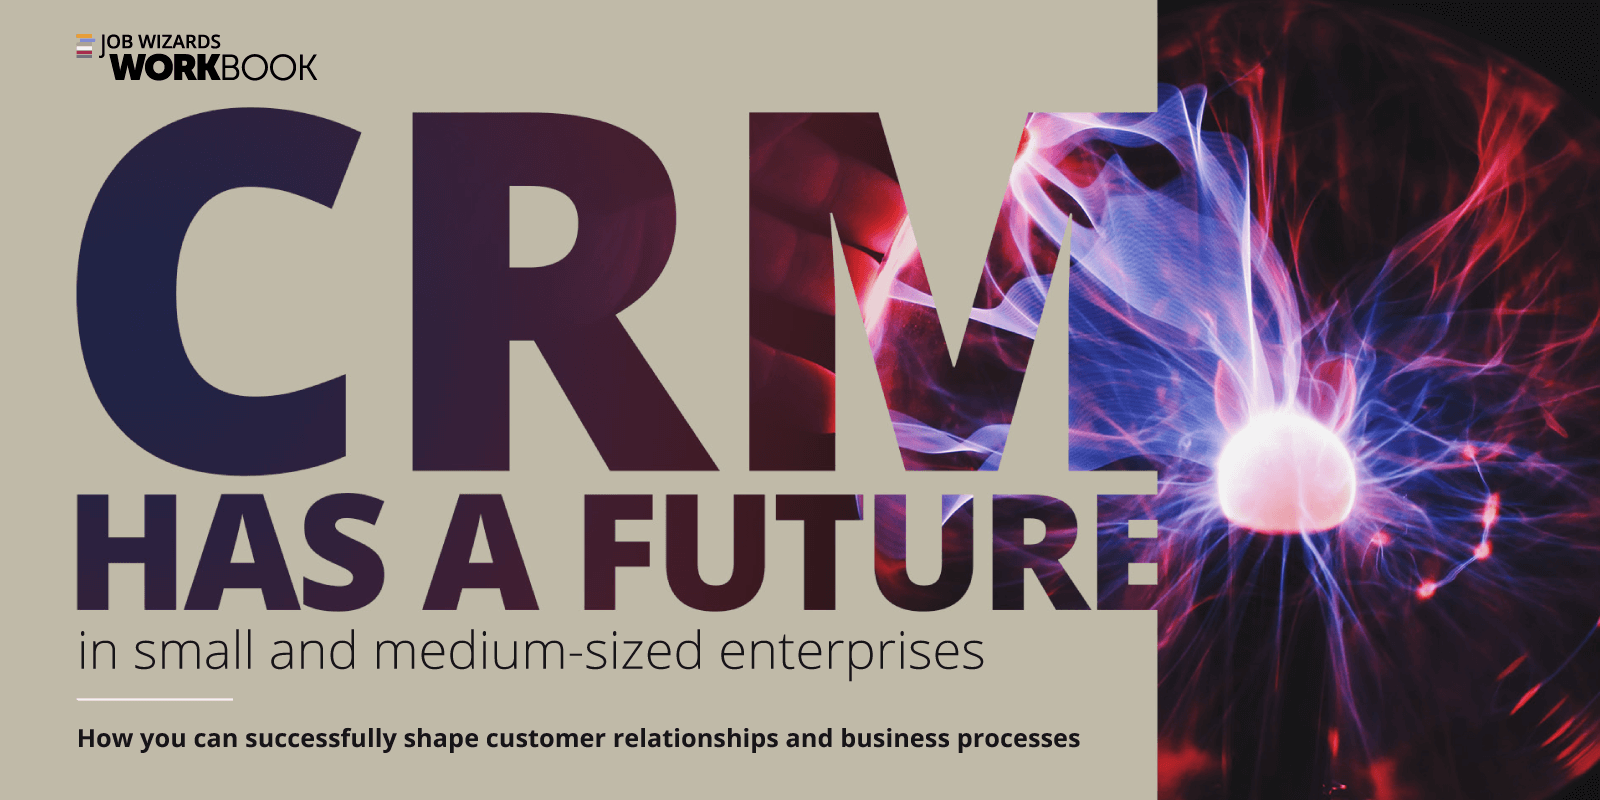 CRM has a future workbook 3